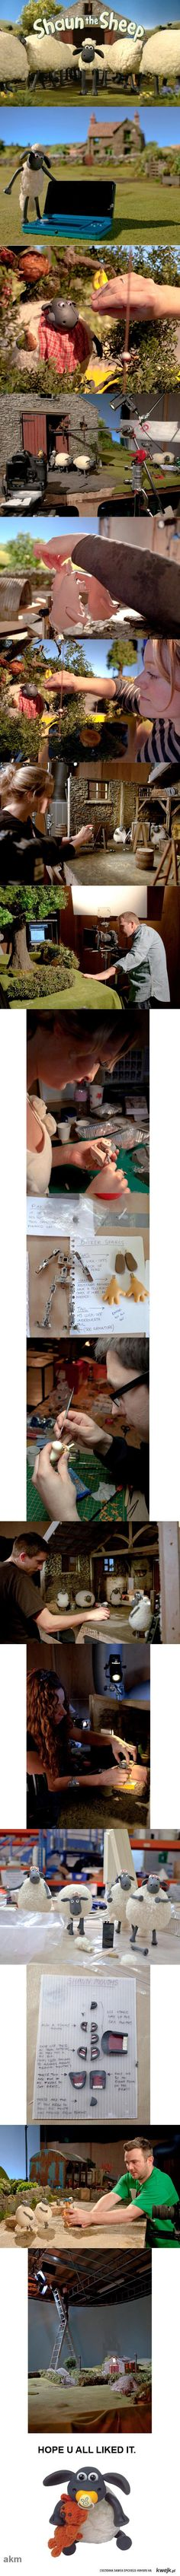 The puppets are made out of Plasticine with special metal skeletons to control the movement of their bodies. Another things are added such as clothes and wool.